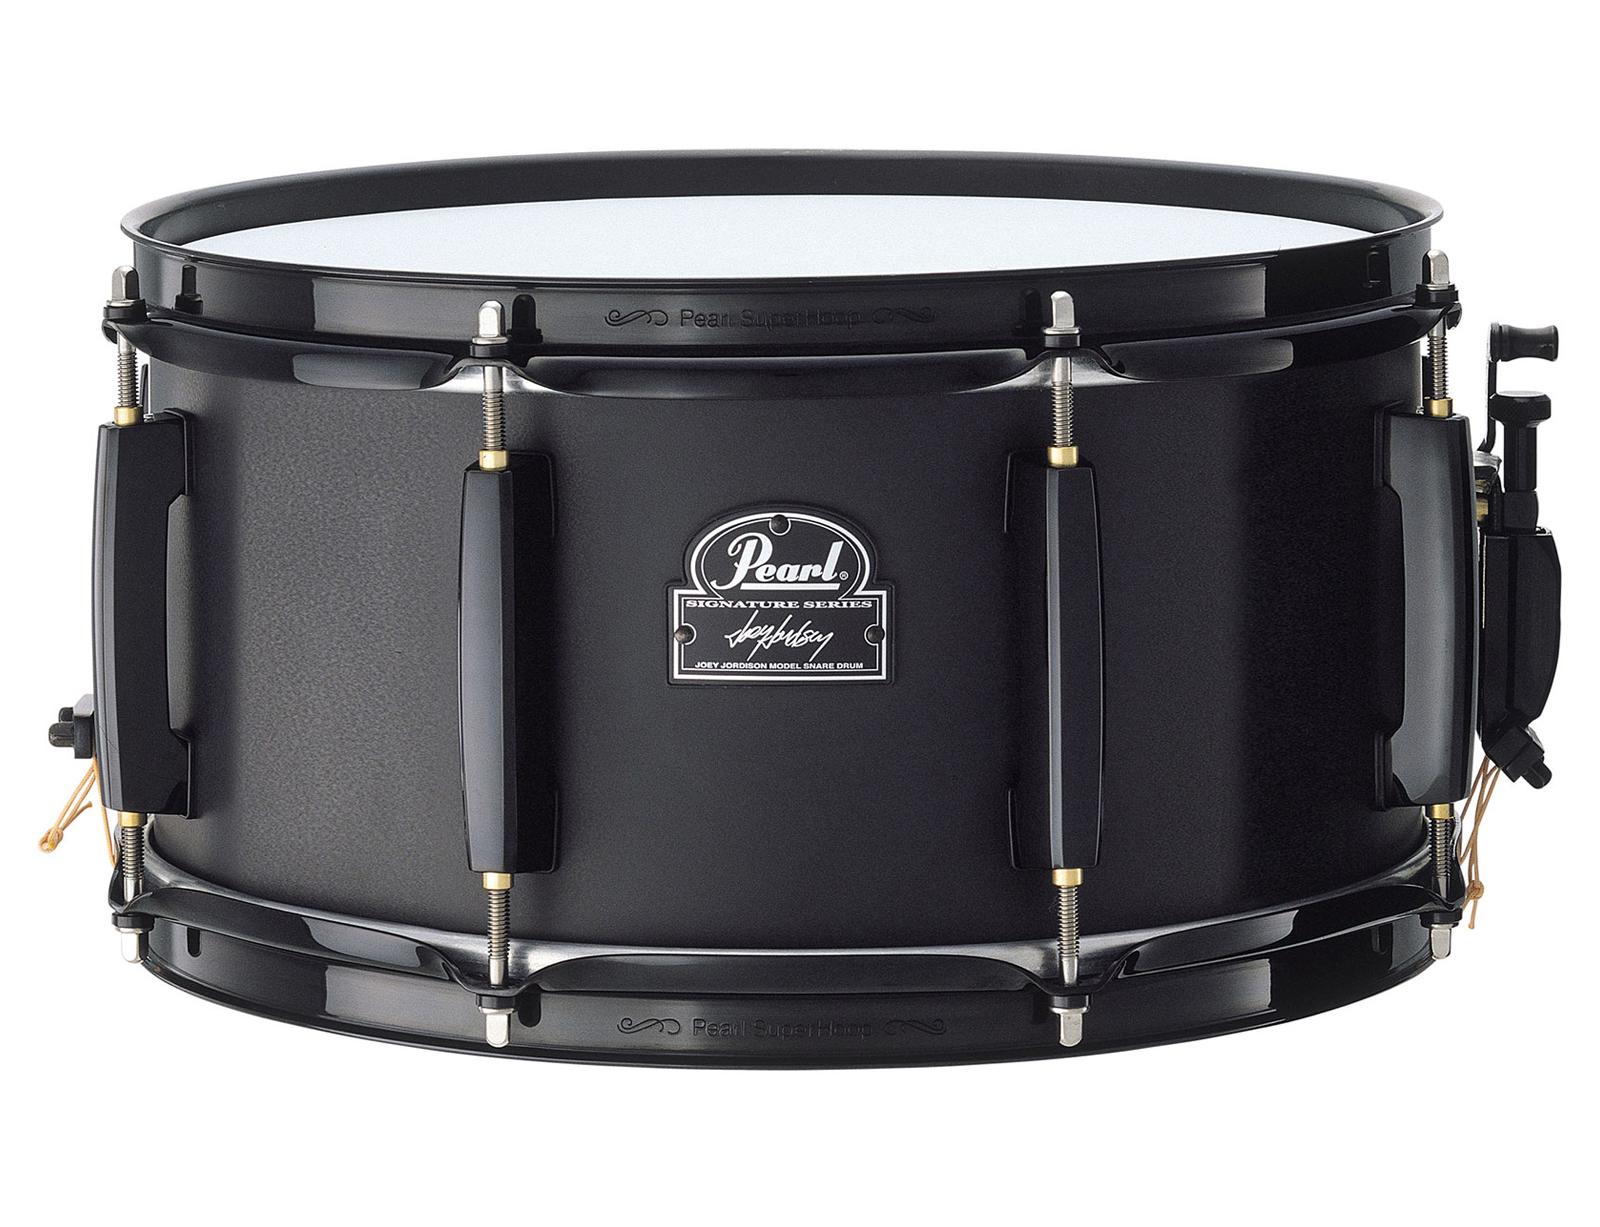 Media Pearl Joey Jordison Signature Snare 1765108 Hd